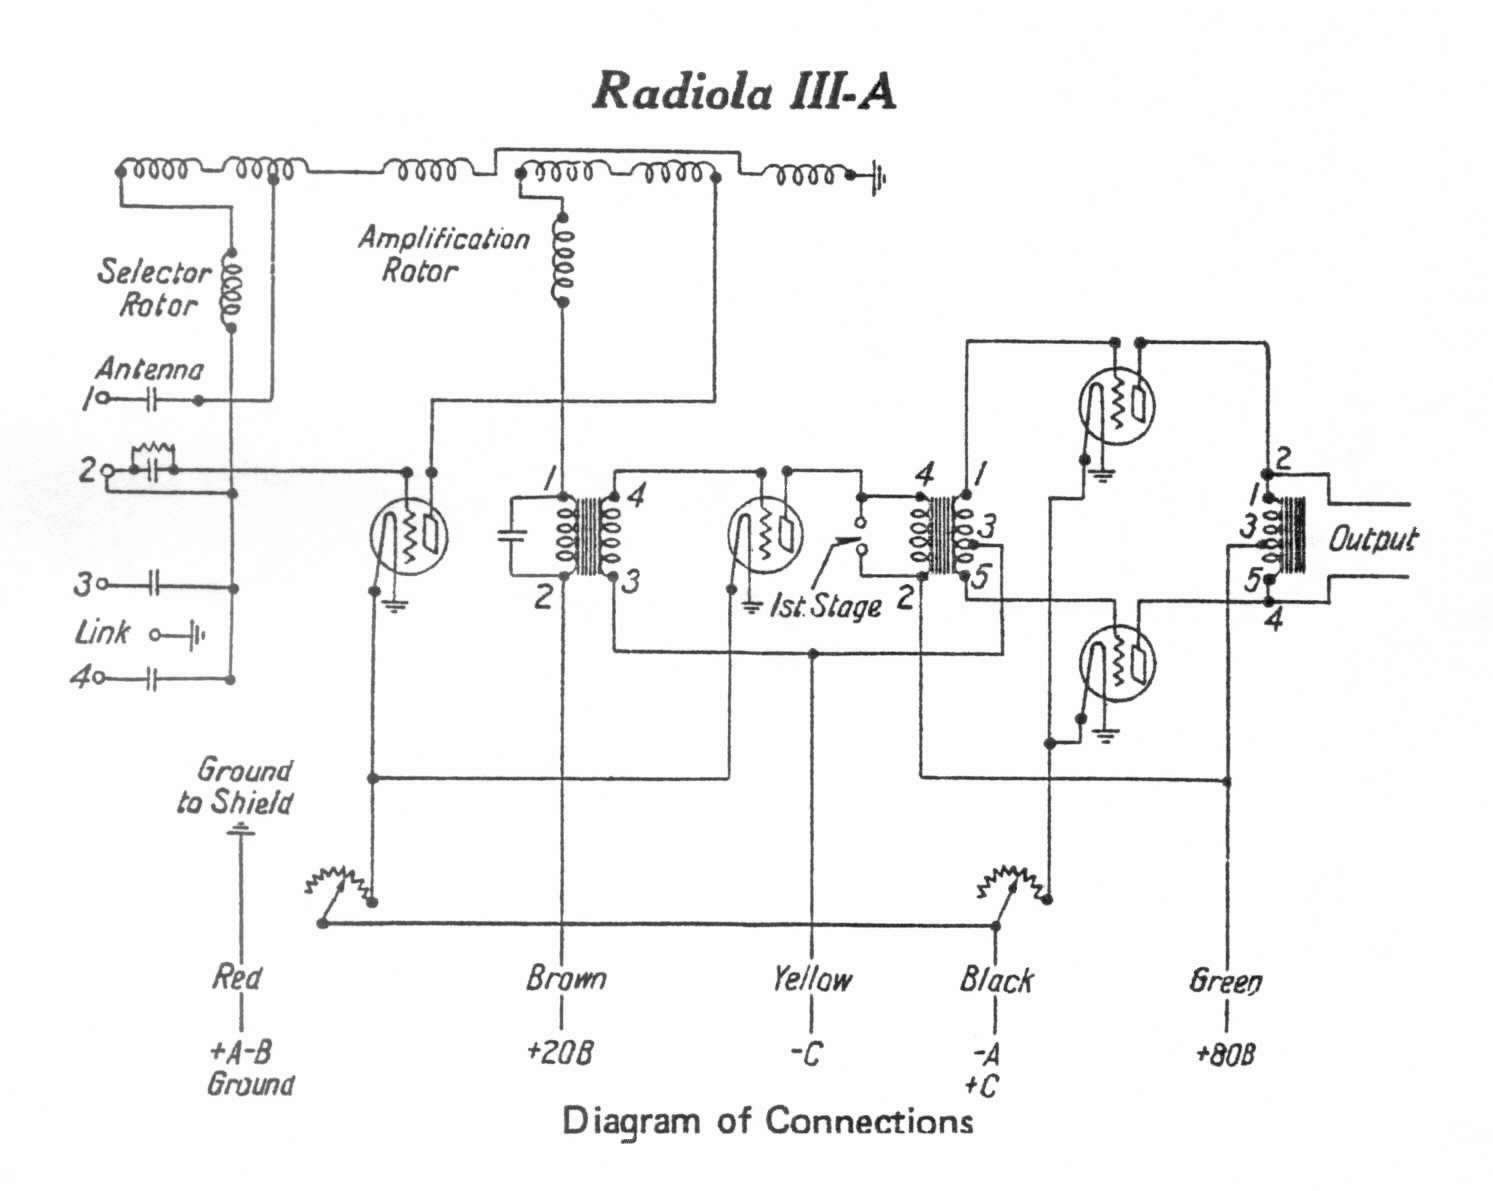 Radiola 3A schematic my hf receiver collection  at reclaimingppi.co